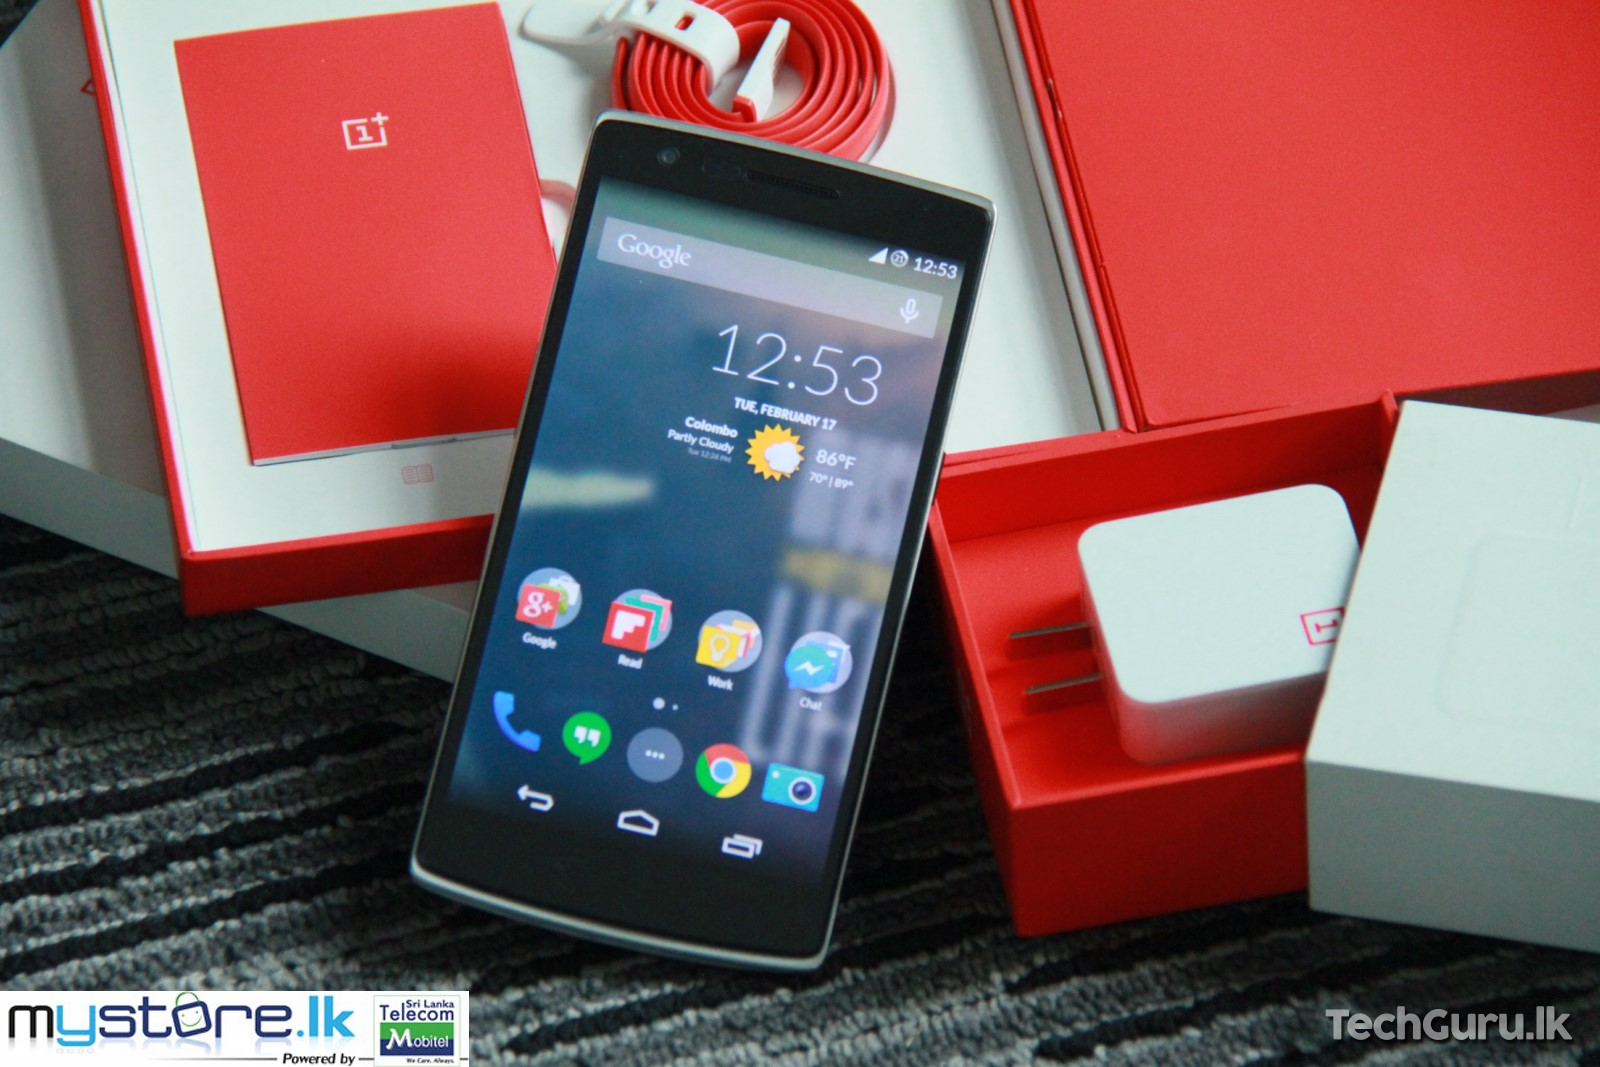 oneplus-one-review-sinhala-techguru-6